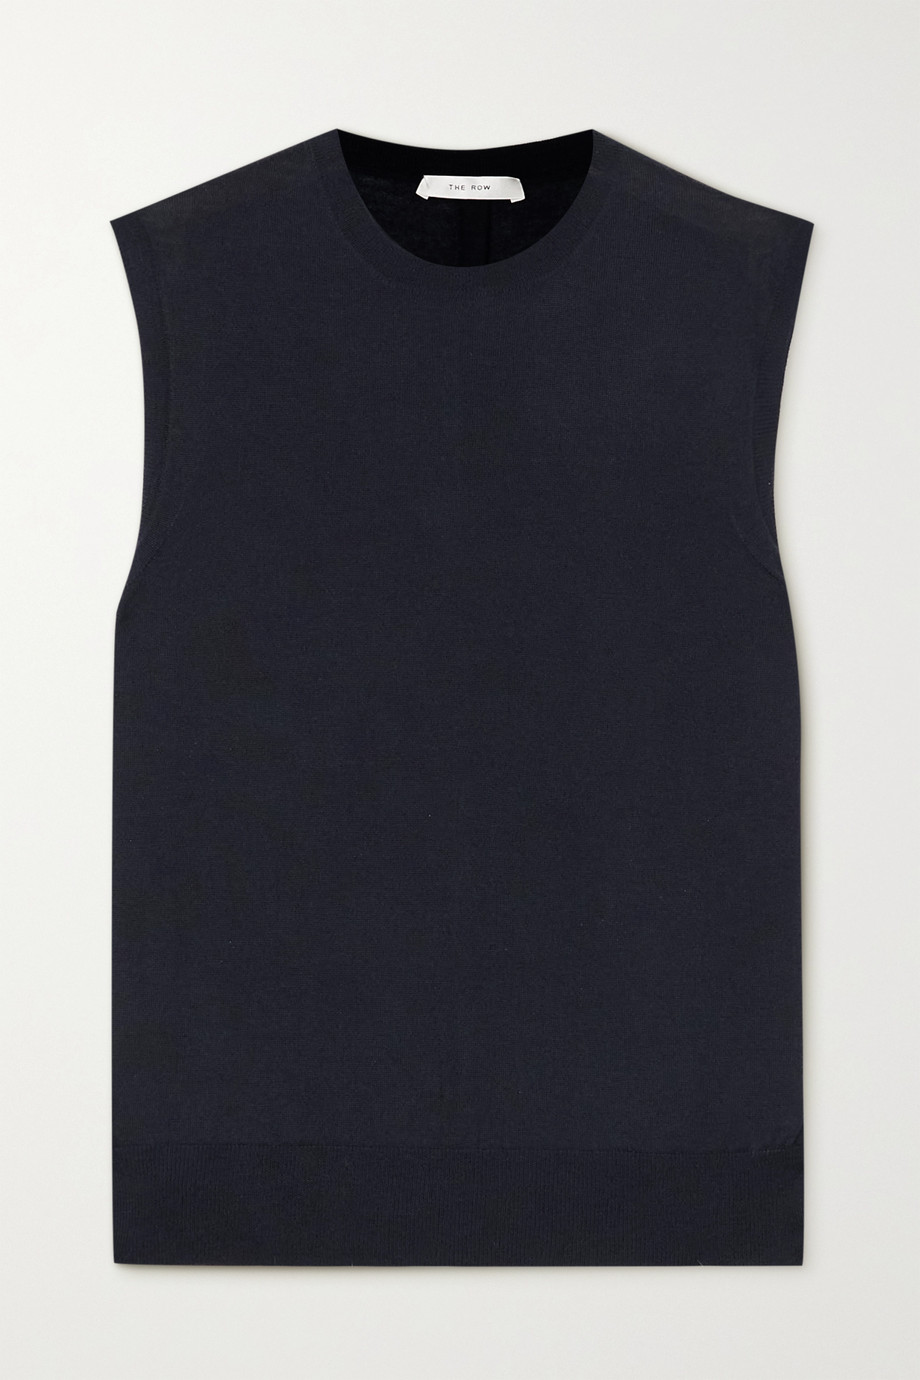 The Row Balham cashmere top